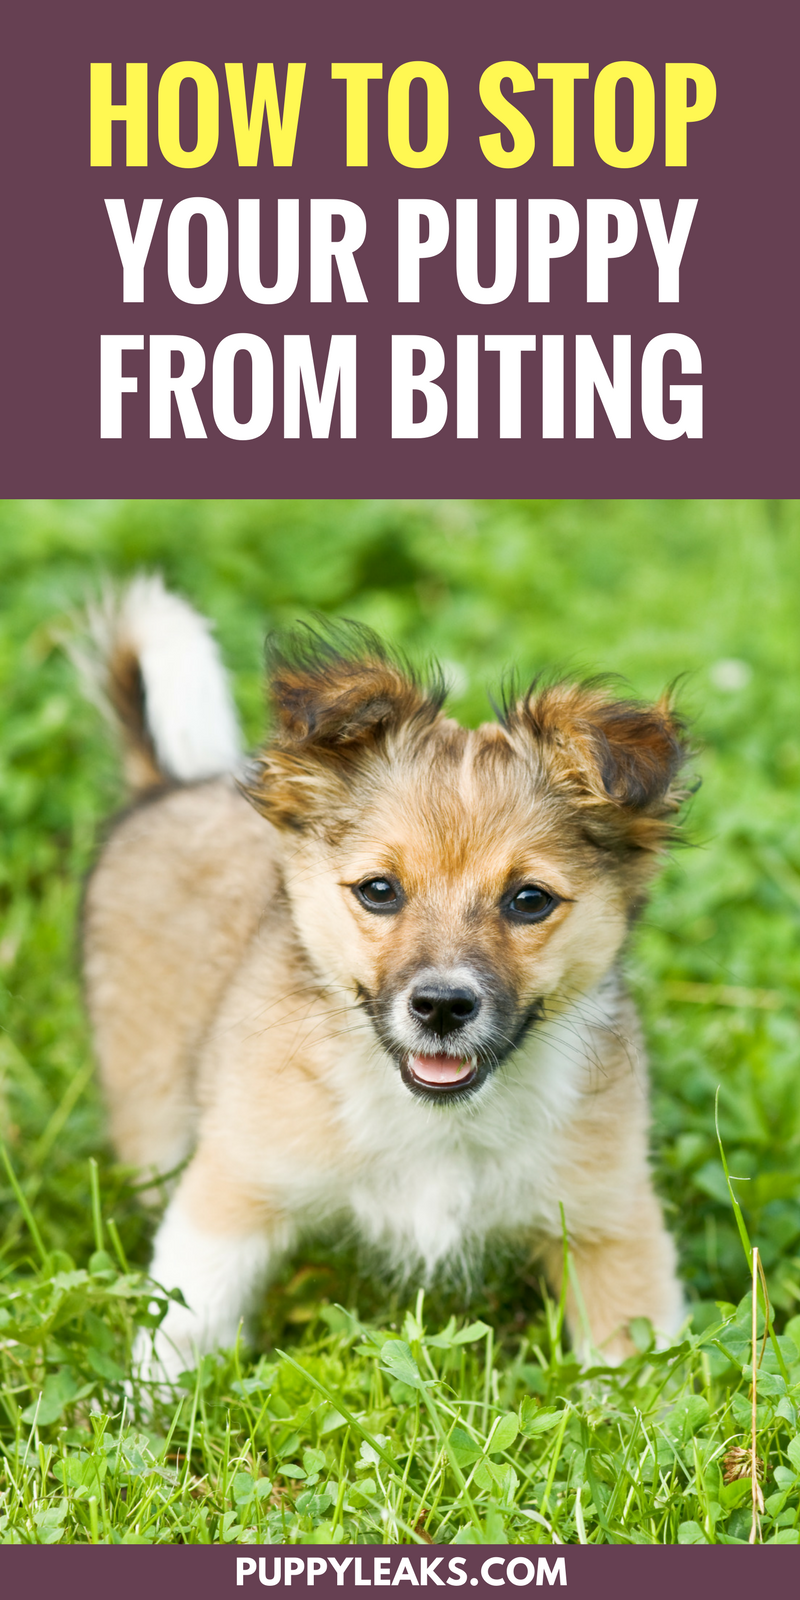 3 Simple Ways To Stop Your Puppy From Biting Puppy Leaks Puppy Training Biting Puppy Biting Training Your Puppy